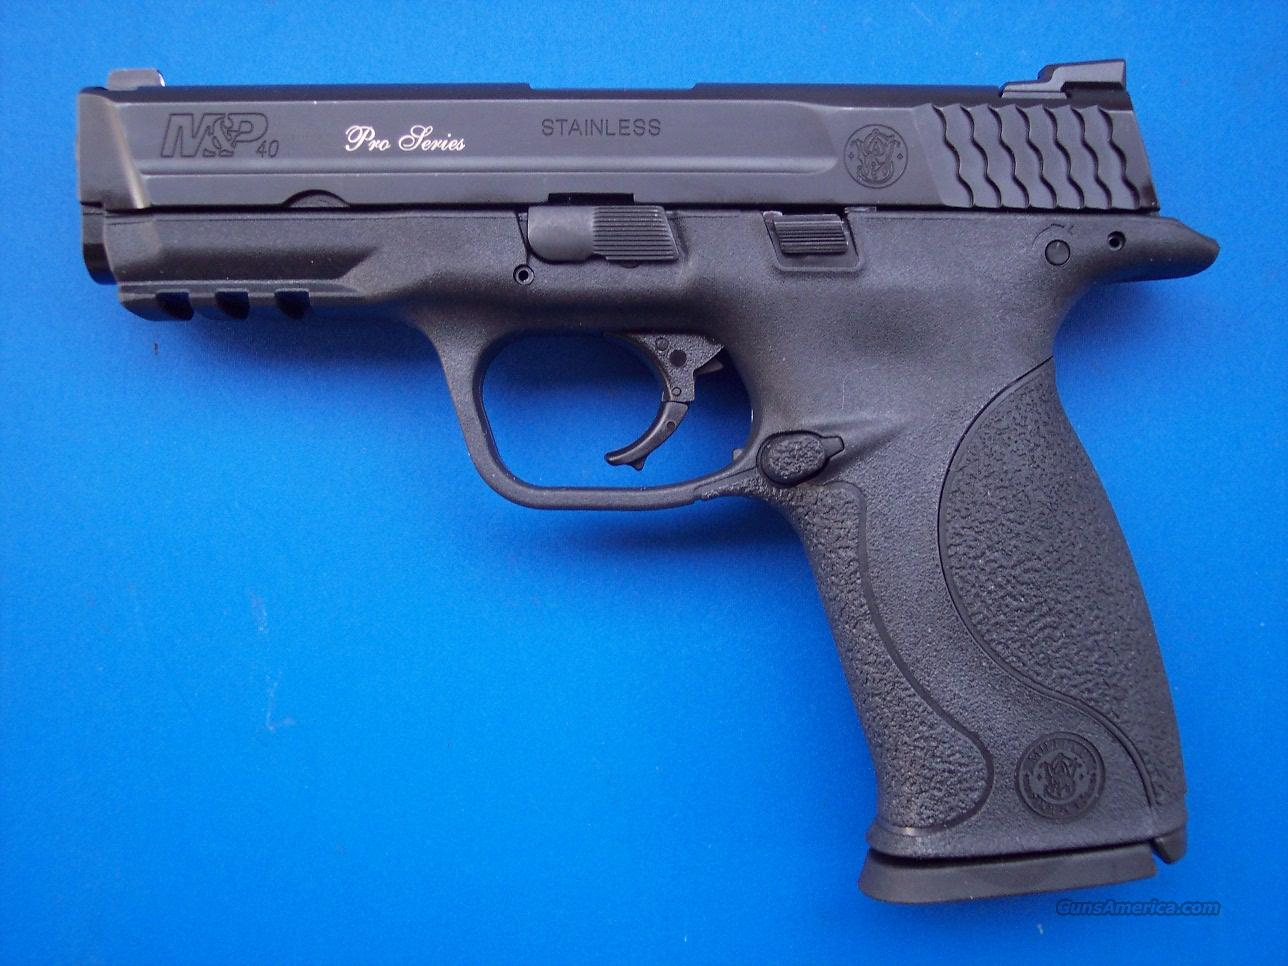 Smith & Wesson M&P Pro Series 40 S&W Night Sights *NEW* $50 REBATE  Guns > Pistols > Smith & Wesson Pistols - Autos > Polymer Frame